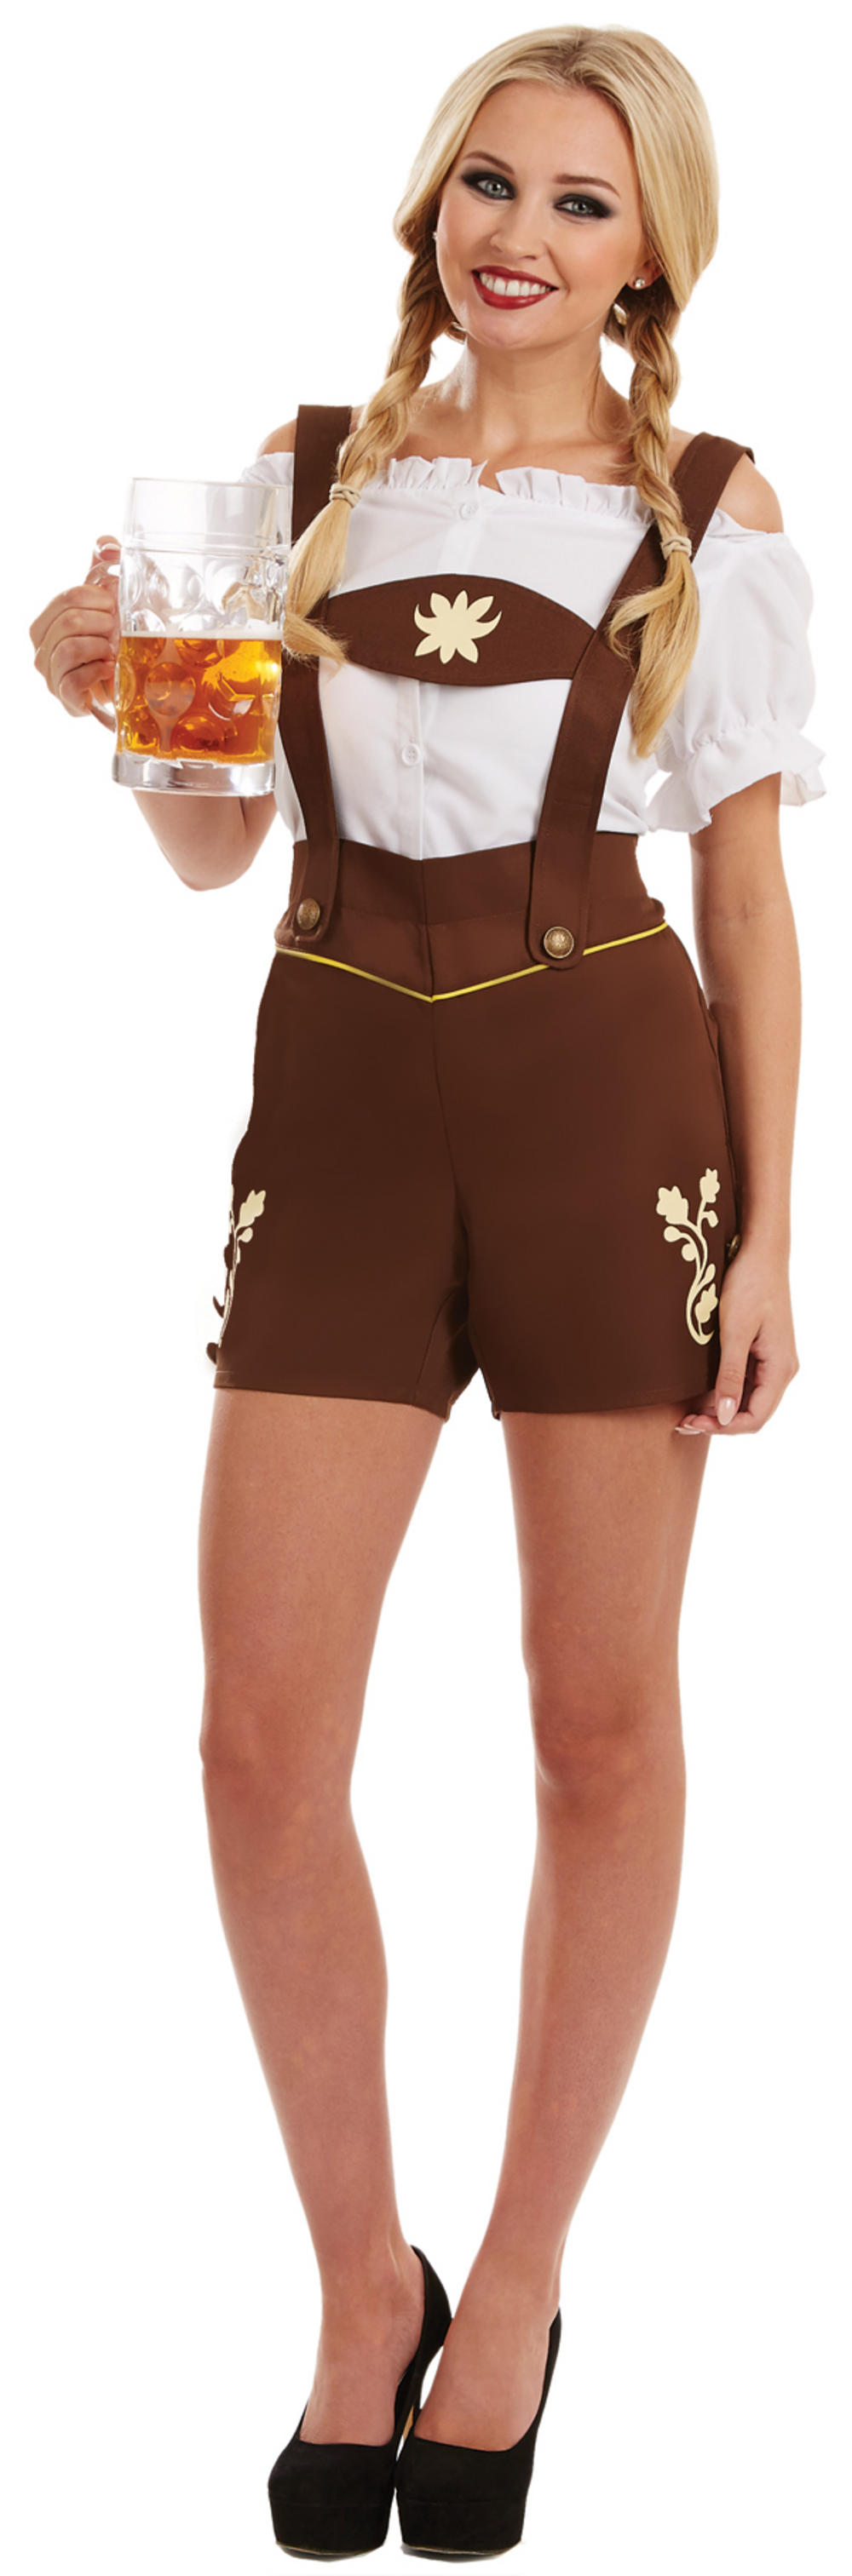 Bavarian Lederhosen Ladies Costume